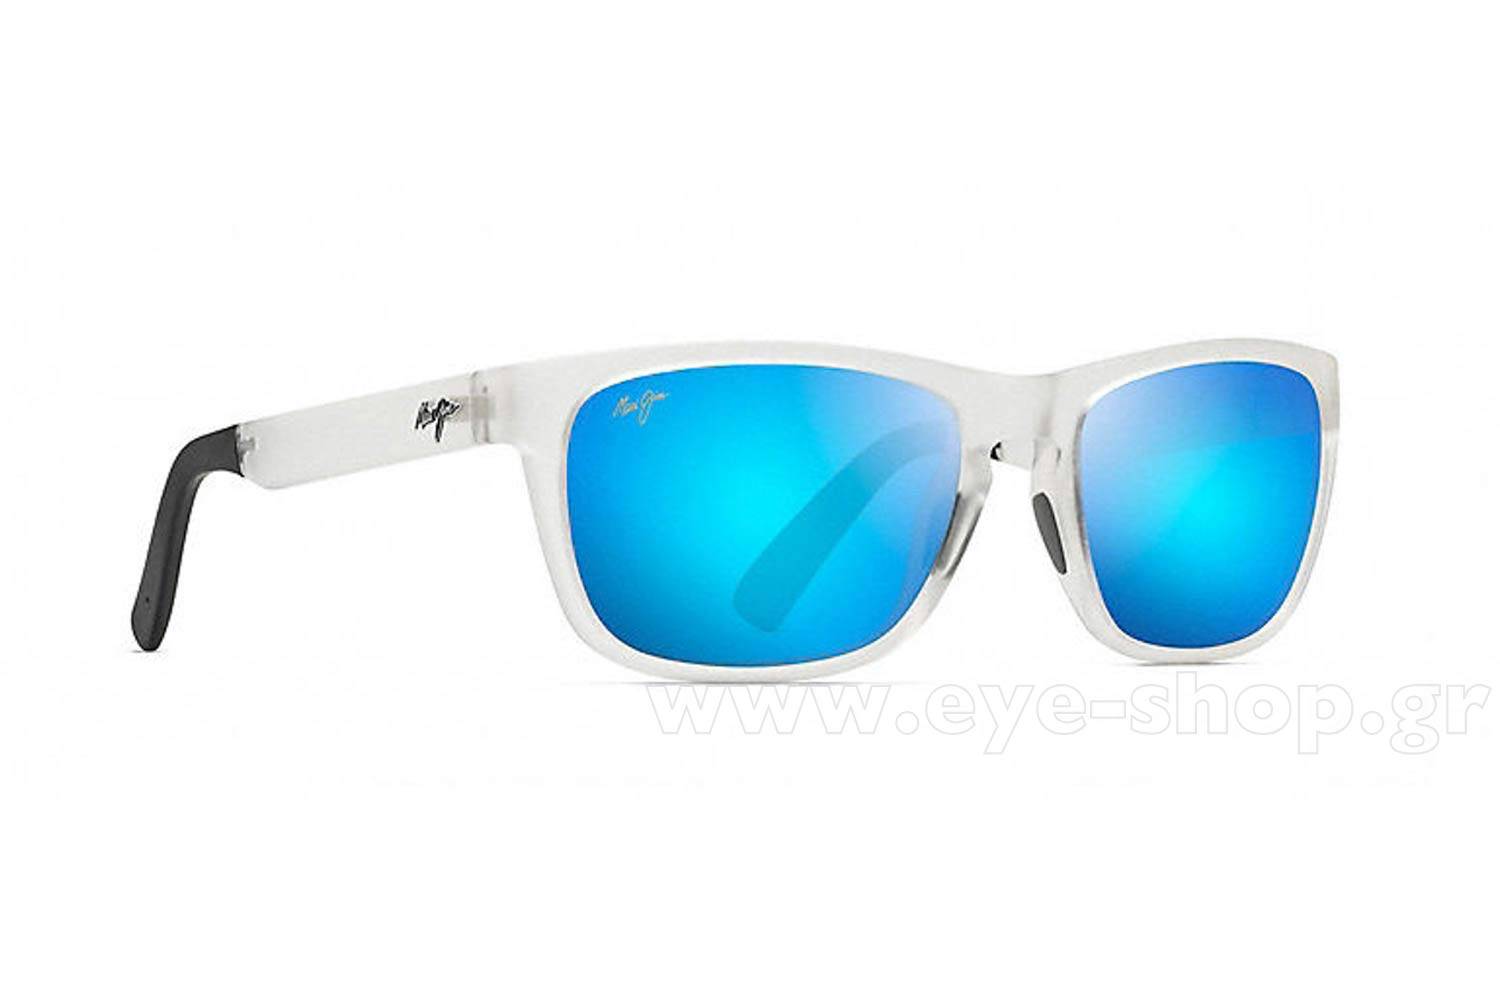 27582a186425 SUNGLASSES Maui Jim SOUTH SWELL B755-05CM Blue Hawaii Sthin Glass Polarized  plus